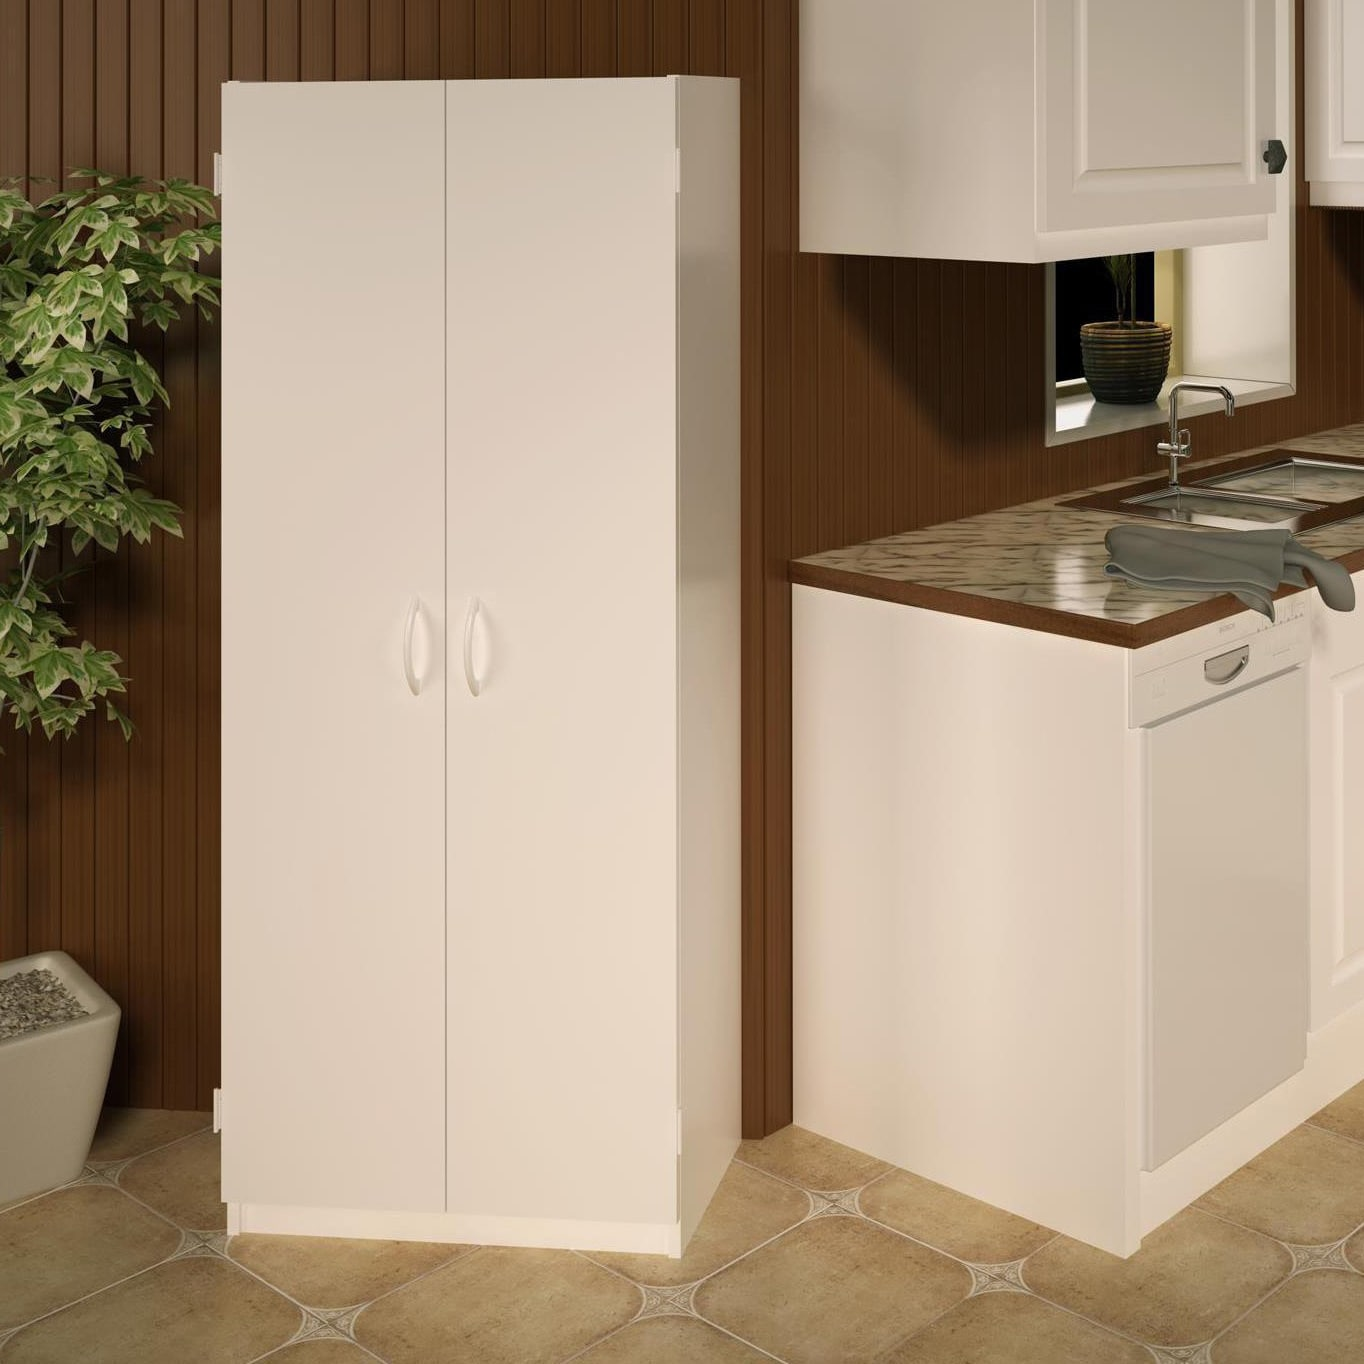 Kitchen Cupboard Doors 50 X 70 Buy Kitchen Pantry Storage Online At Overstock Our Best